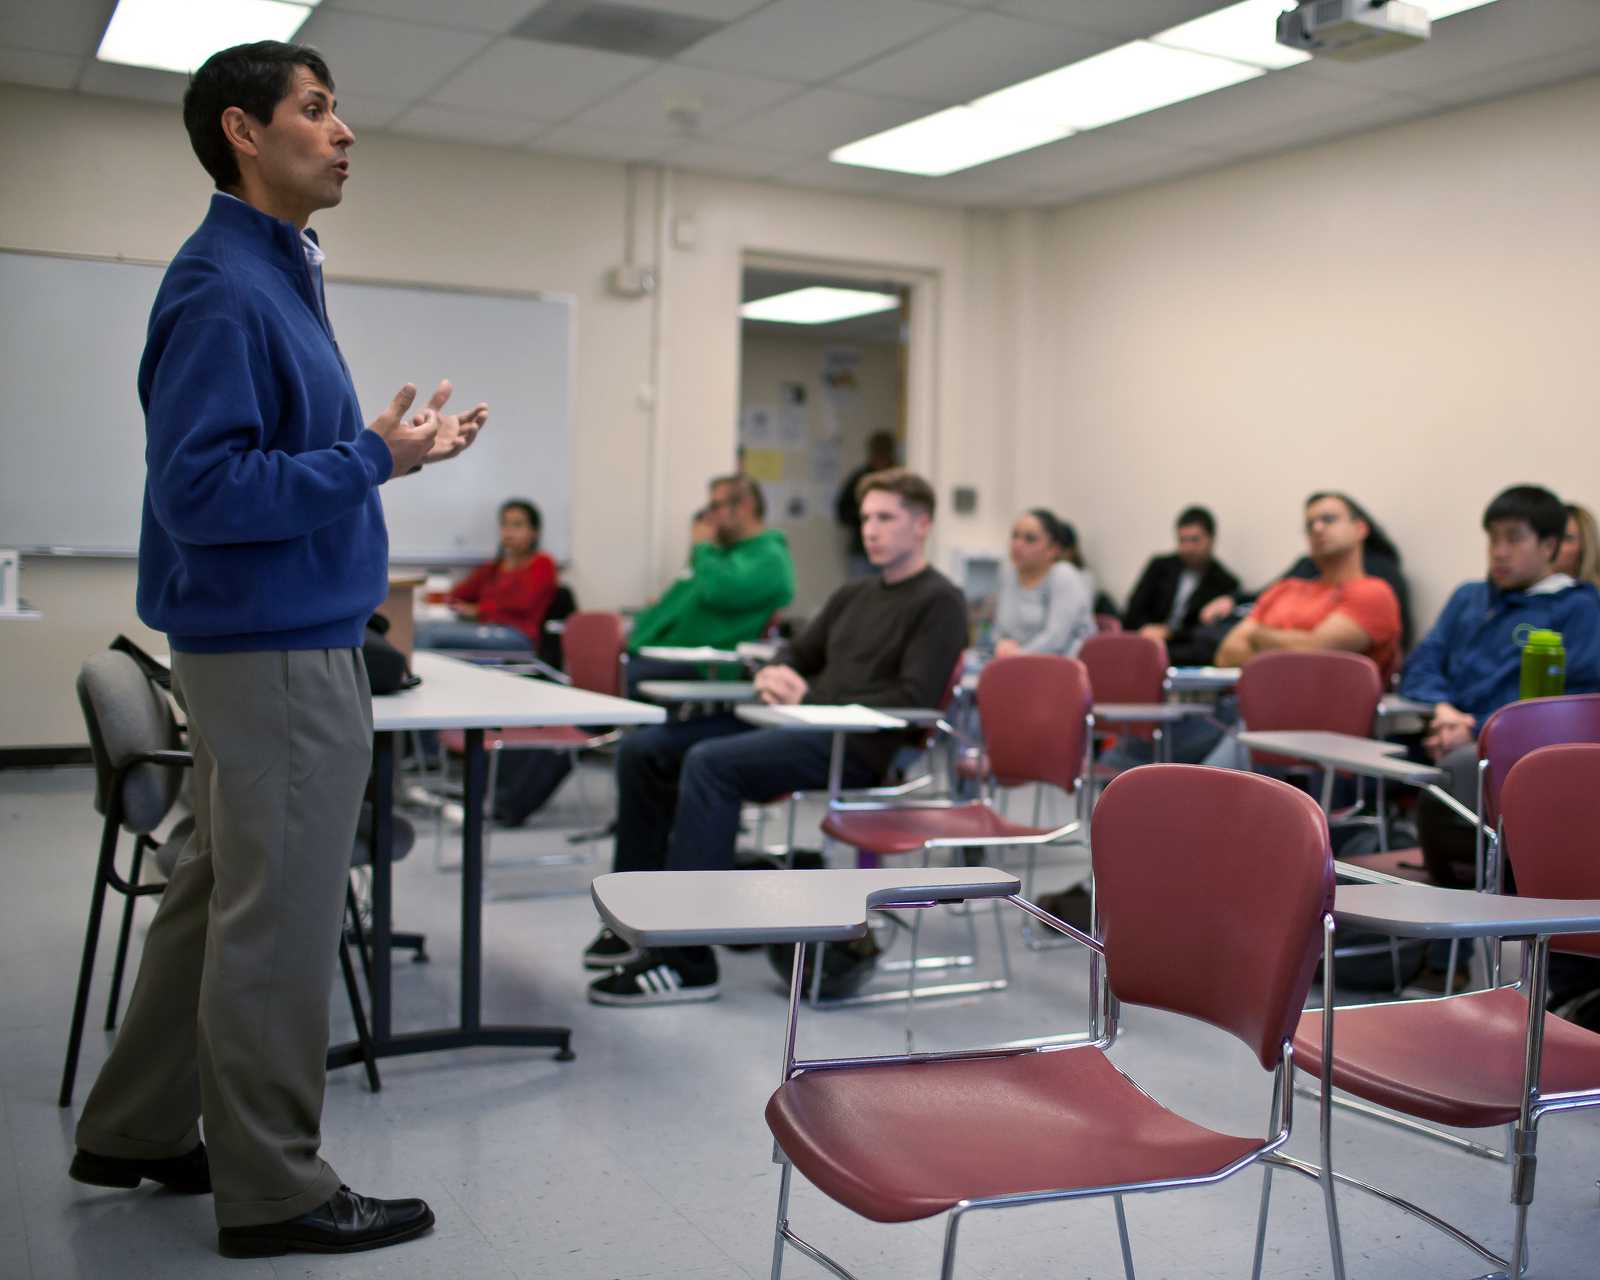 Ex-con teaches prison reform class at SF State